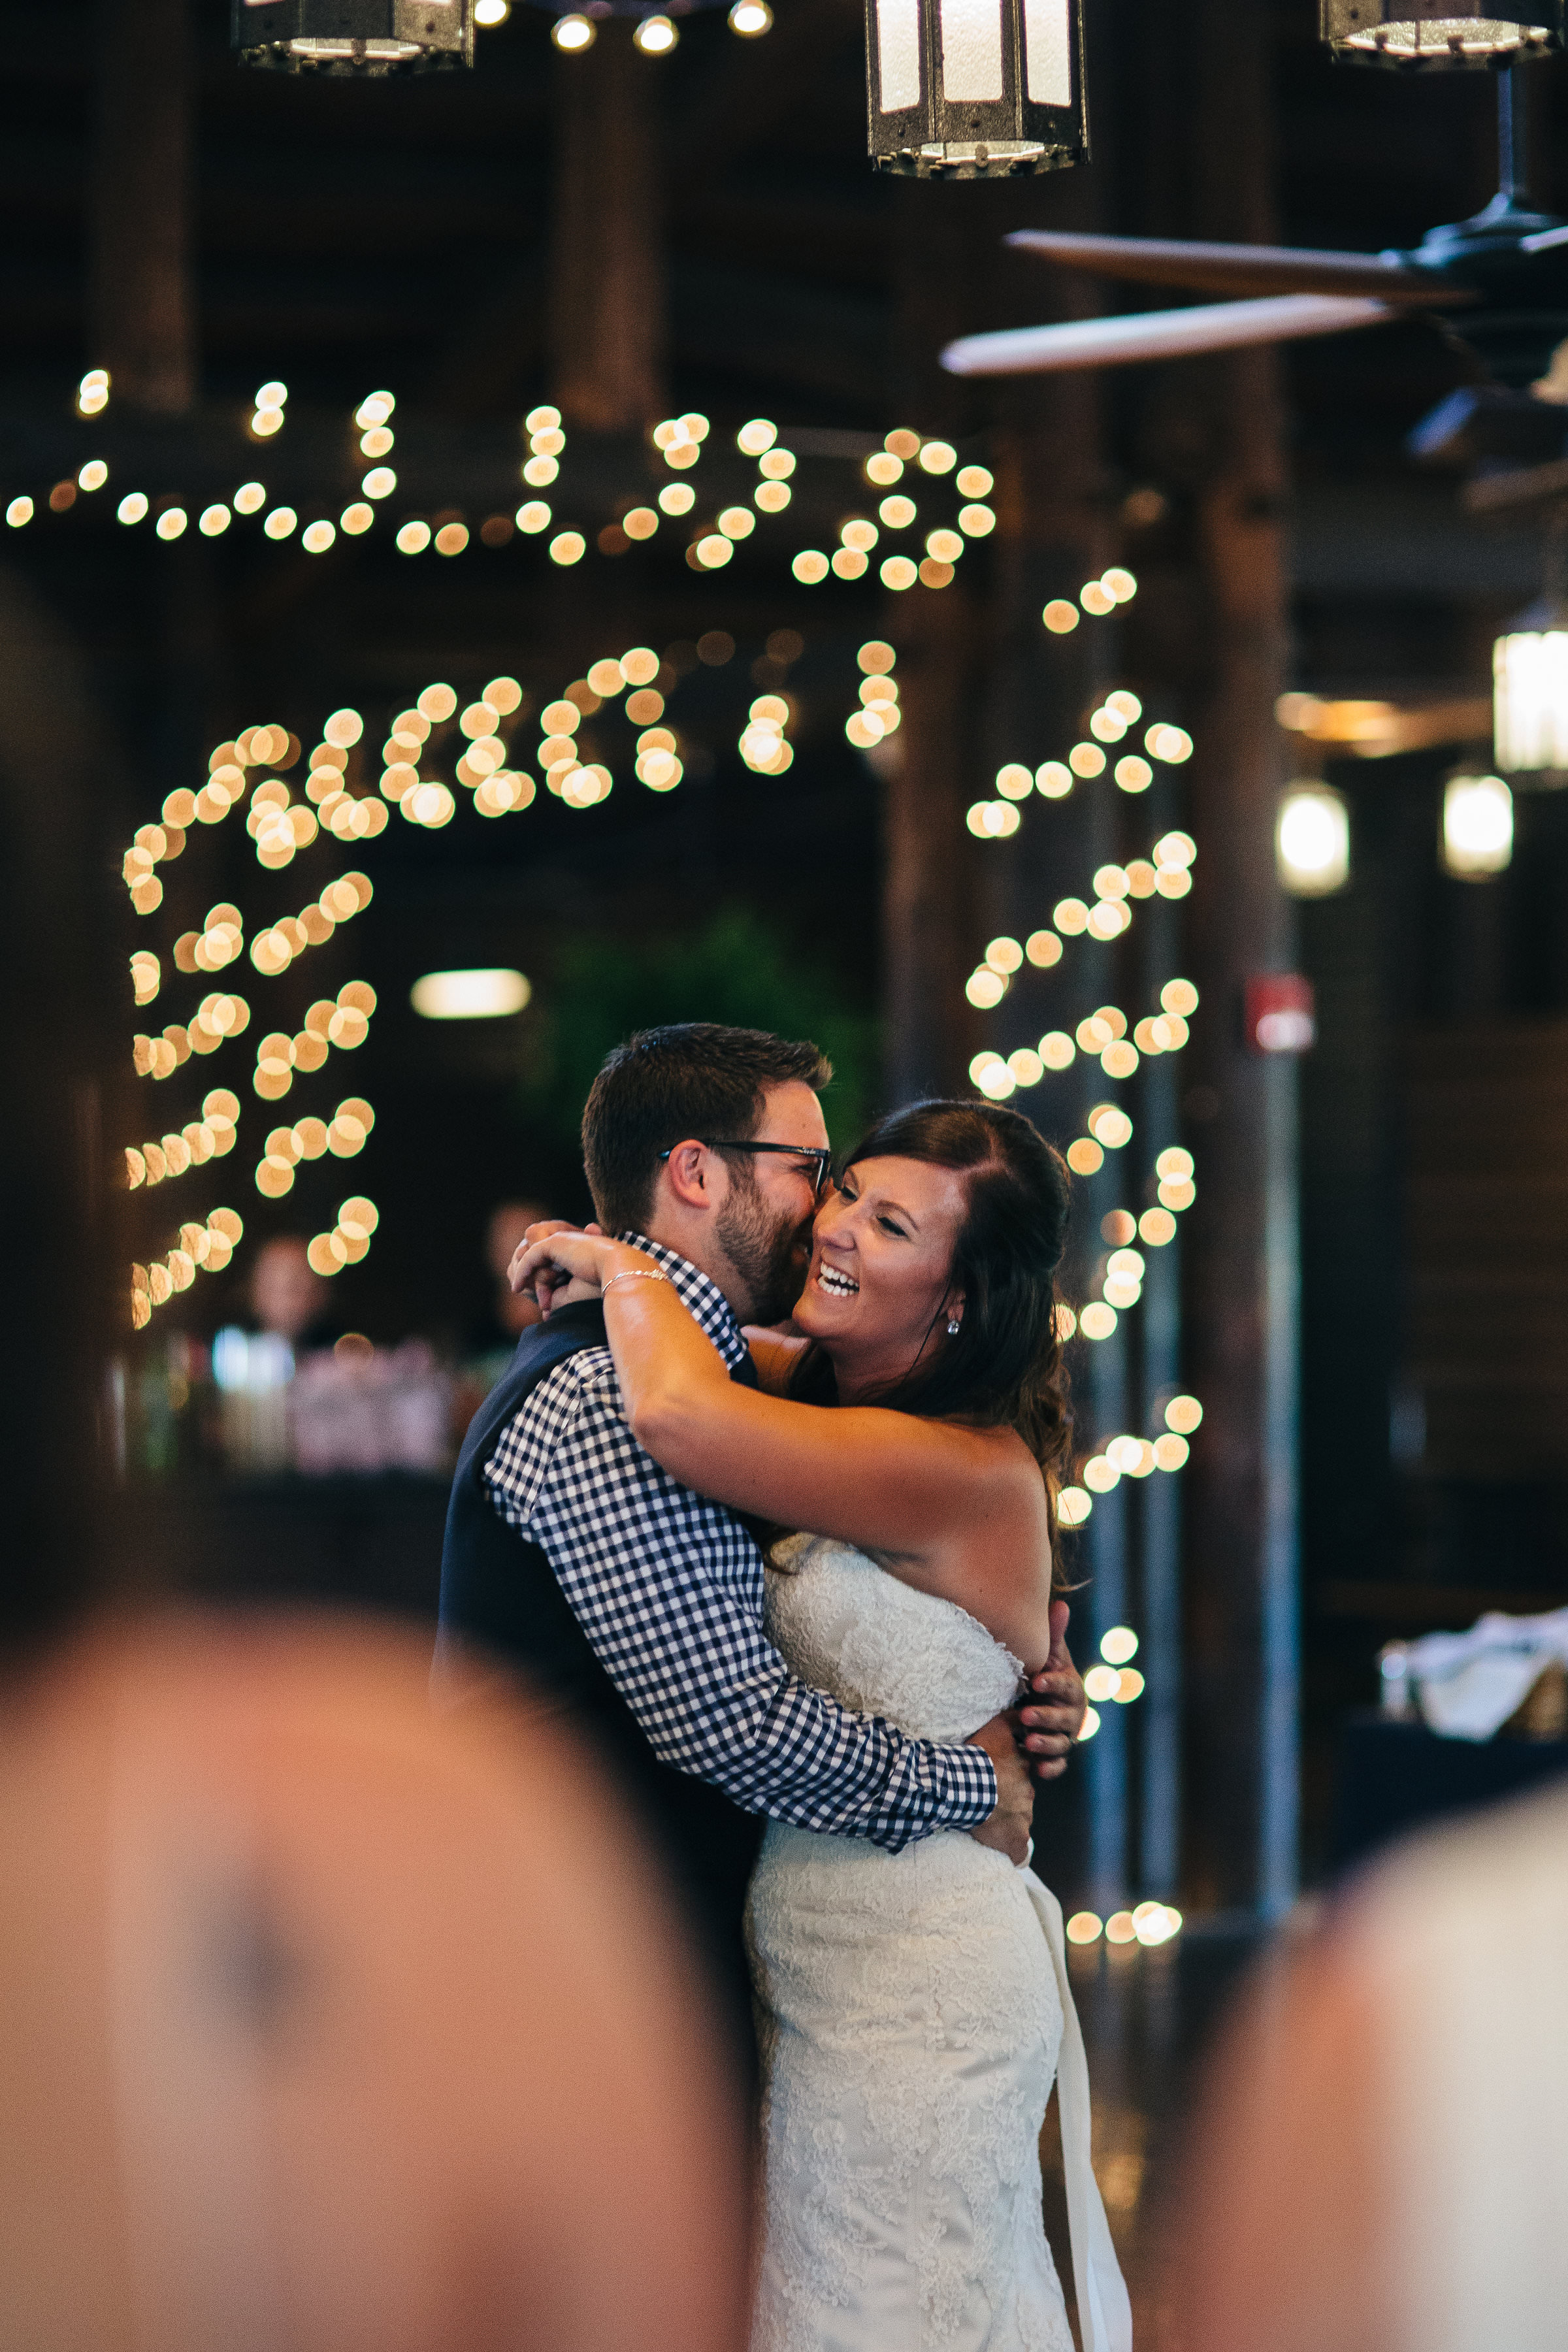 Bride and groom dancing at reception.